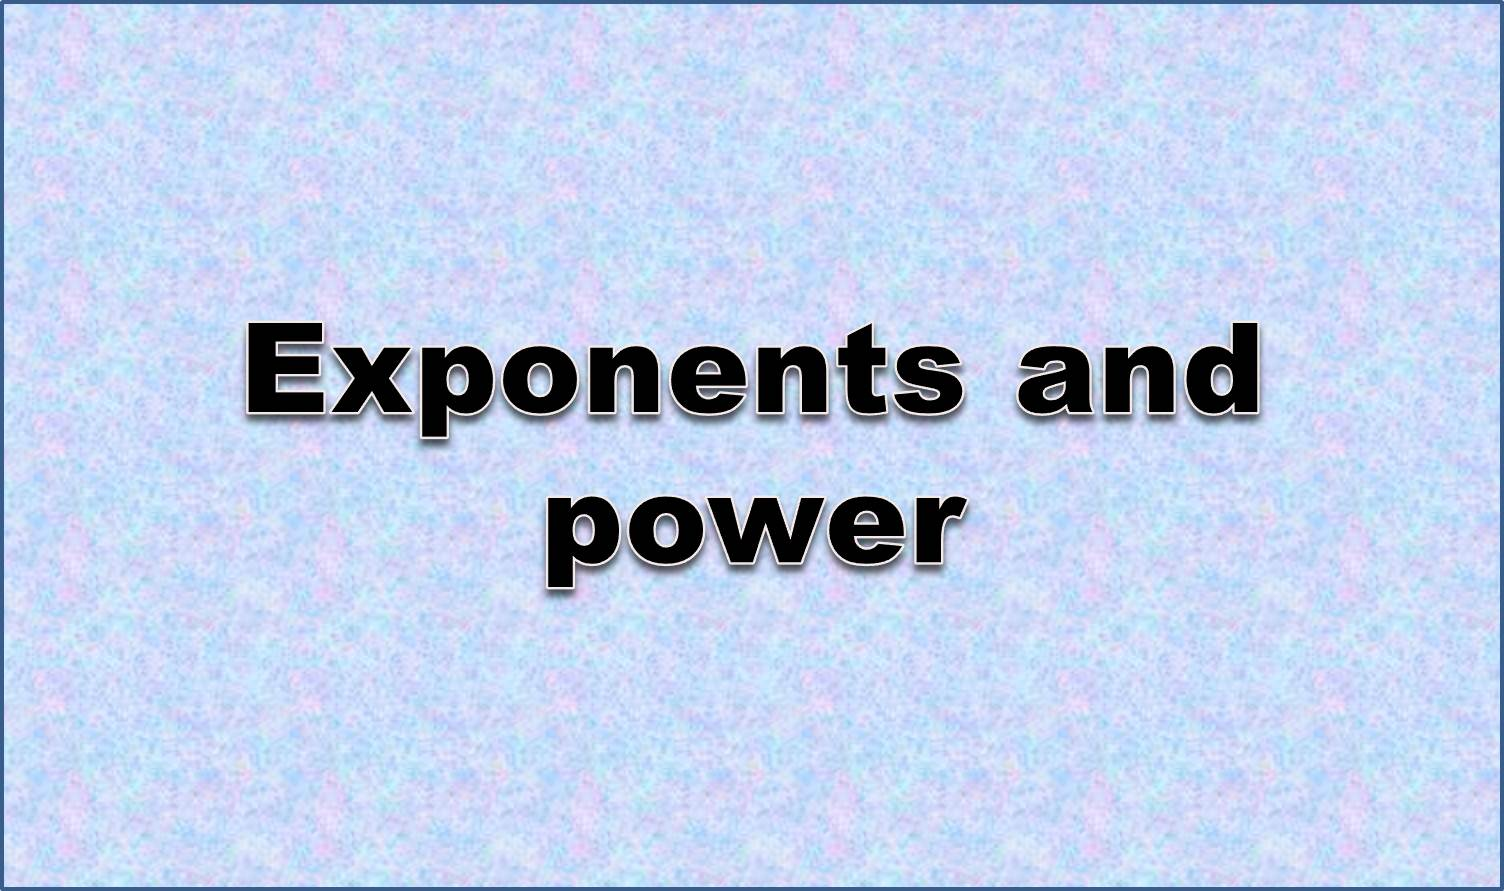 http://study.aisectonline.com/images/Exponents rule intro.jpg